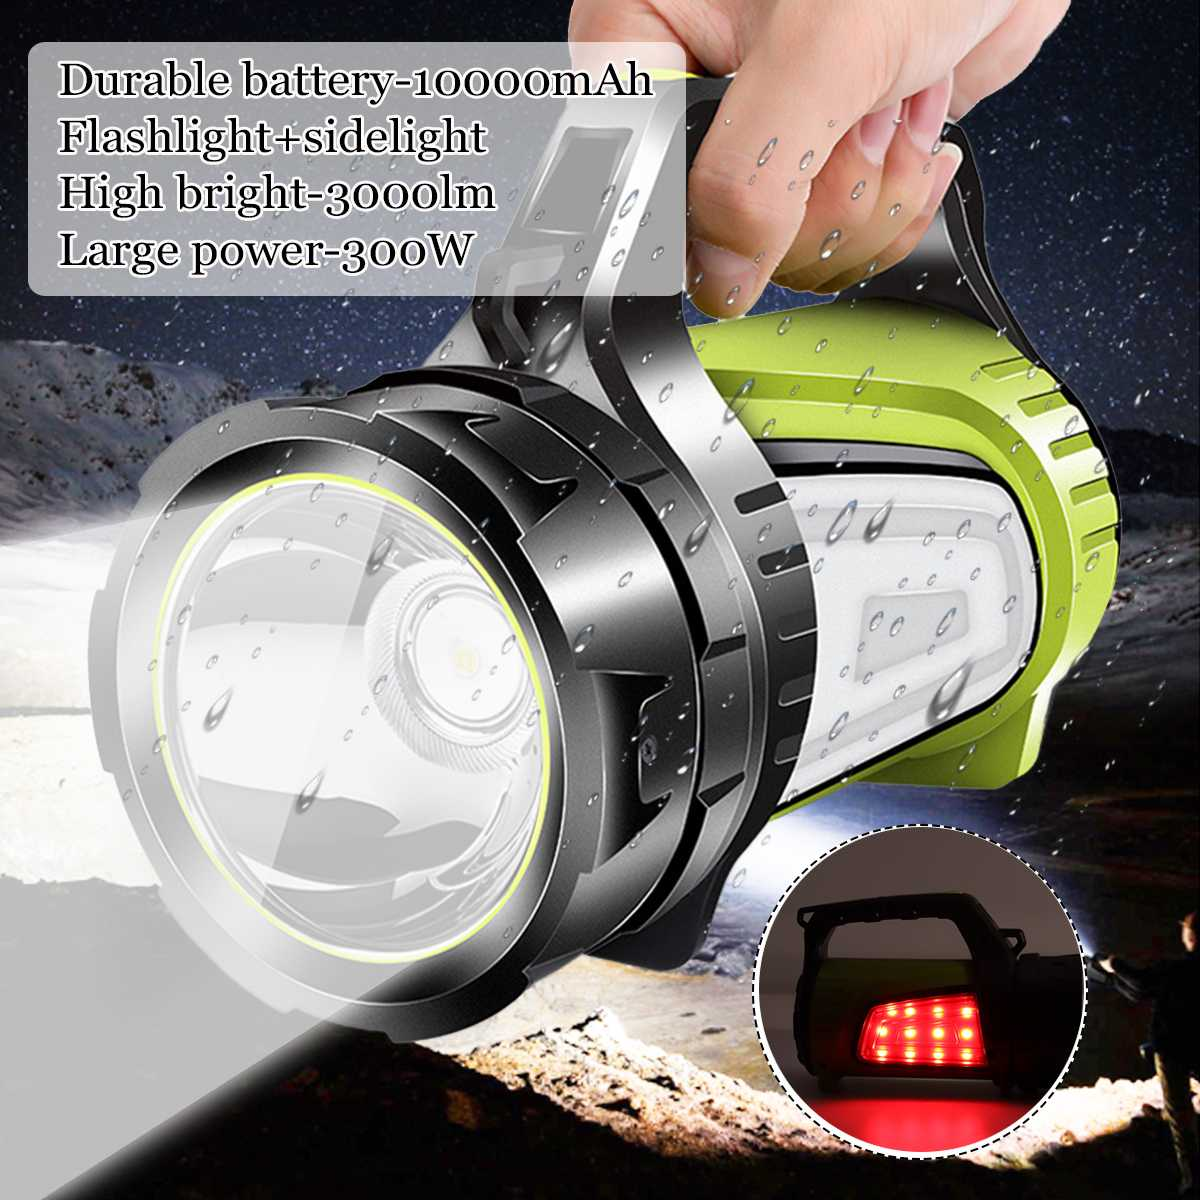 200/300/500W Bright Powerful LED Searchlight Handheld Flashlight Power Bank Rechargeable Battery Waterproof Torch For Outdoor